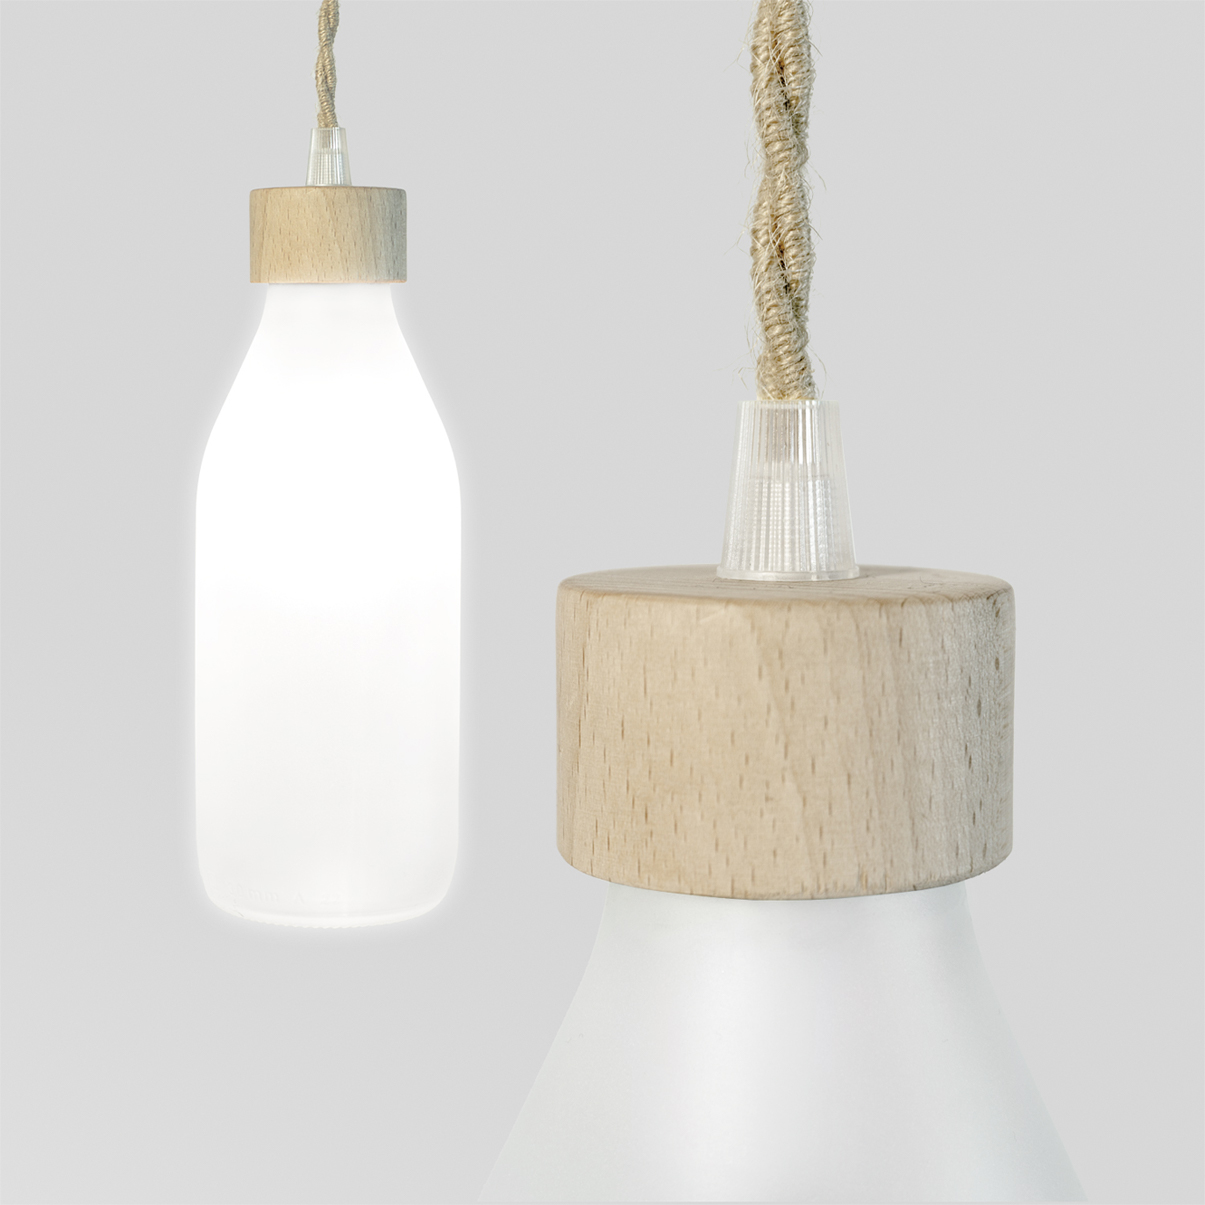 Milk Lamp by Emanuele Pangrazi